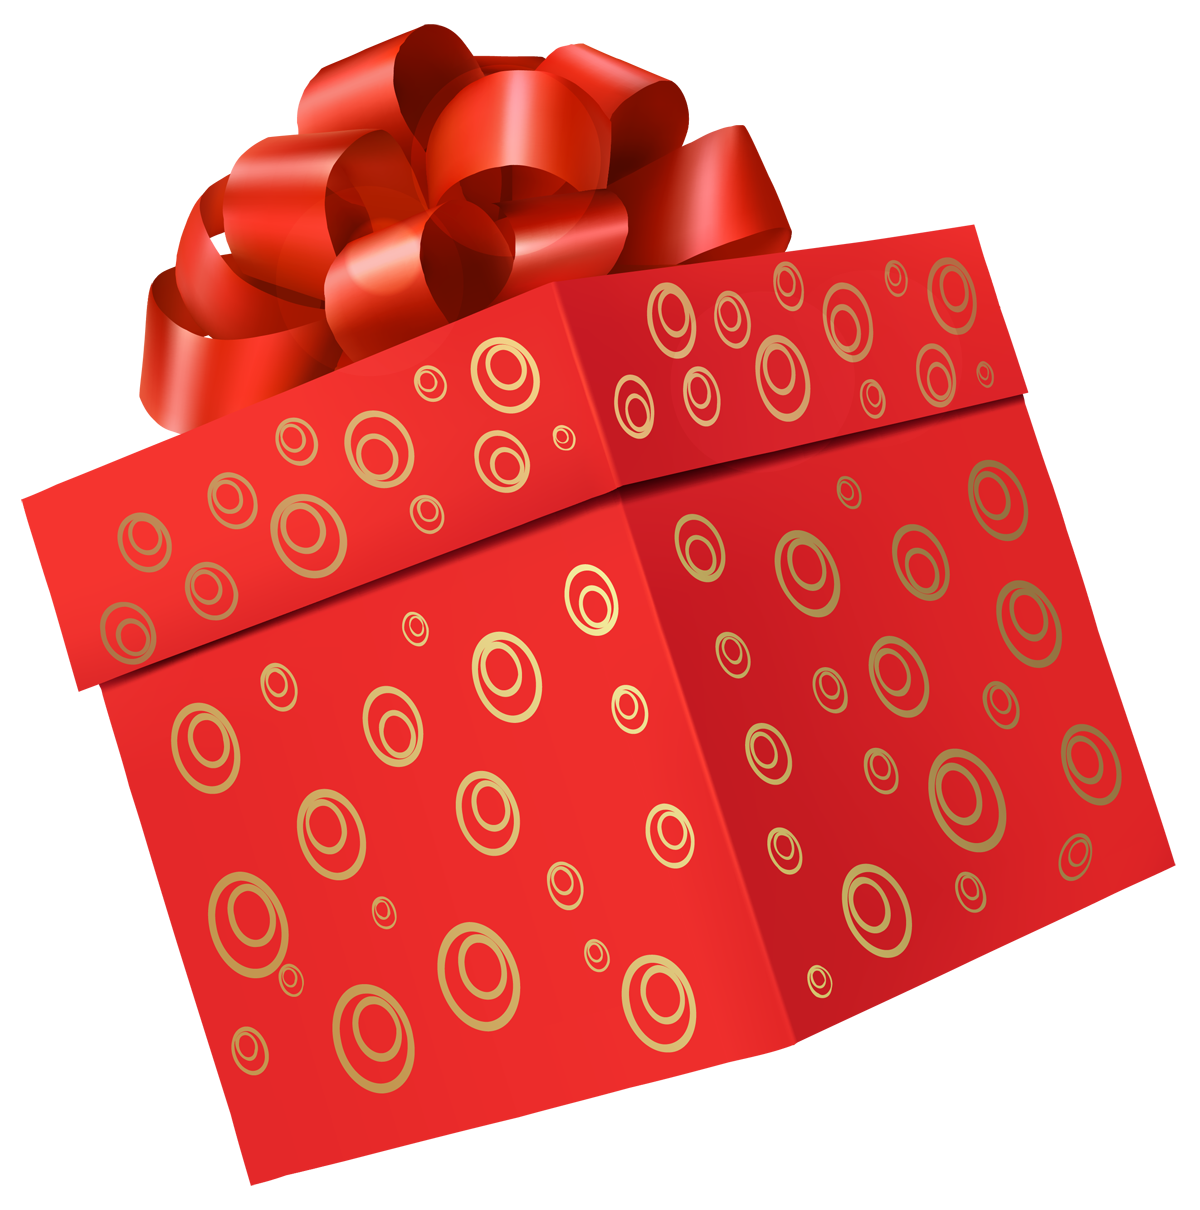 Gift box one isolated. Gifts clipart present outline